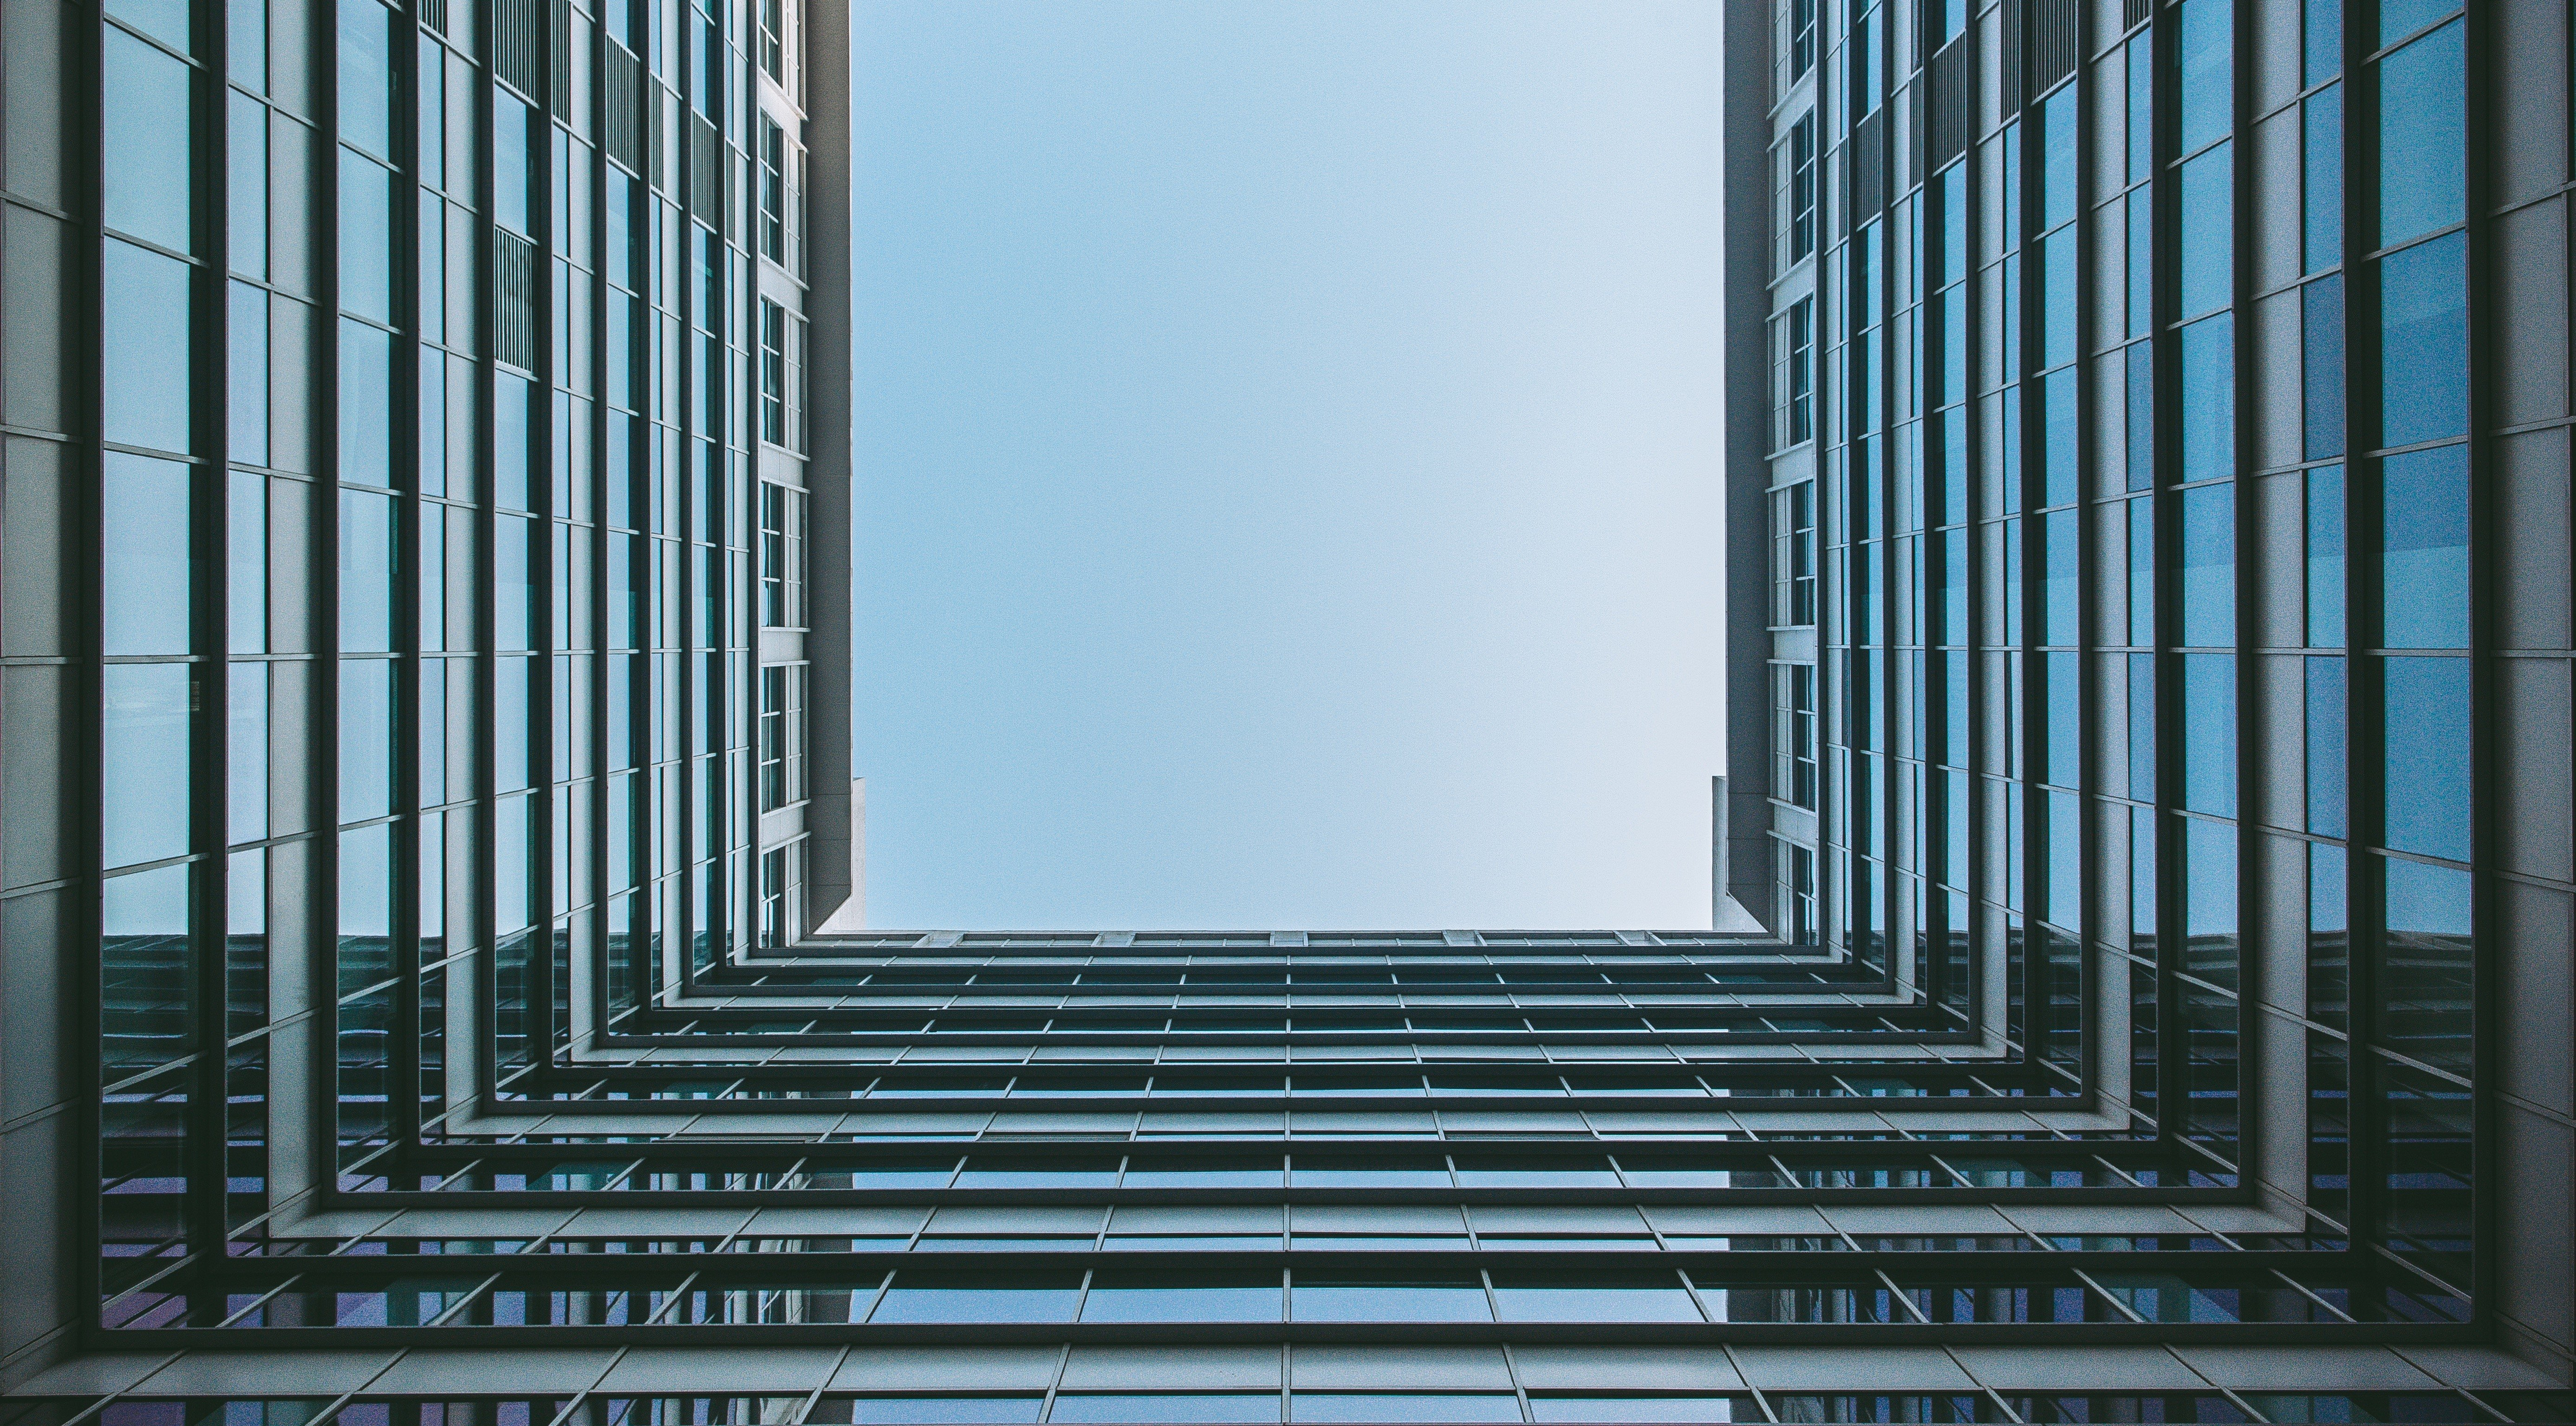 Minimalism, Architecture, Modern, Building, Clear Sky HD